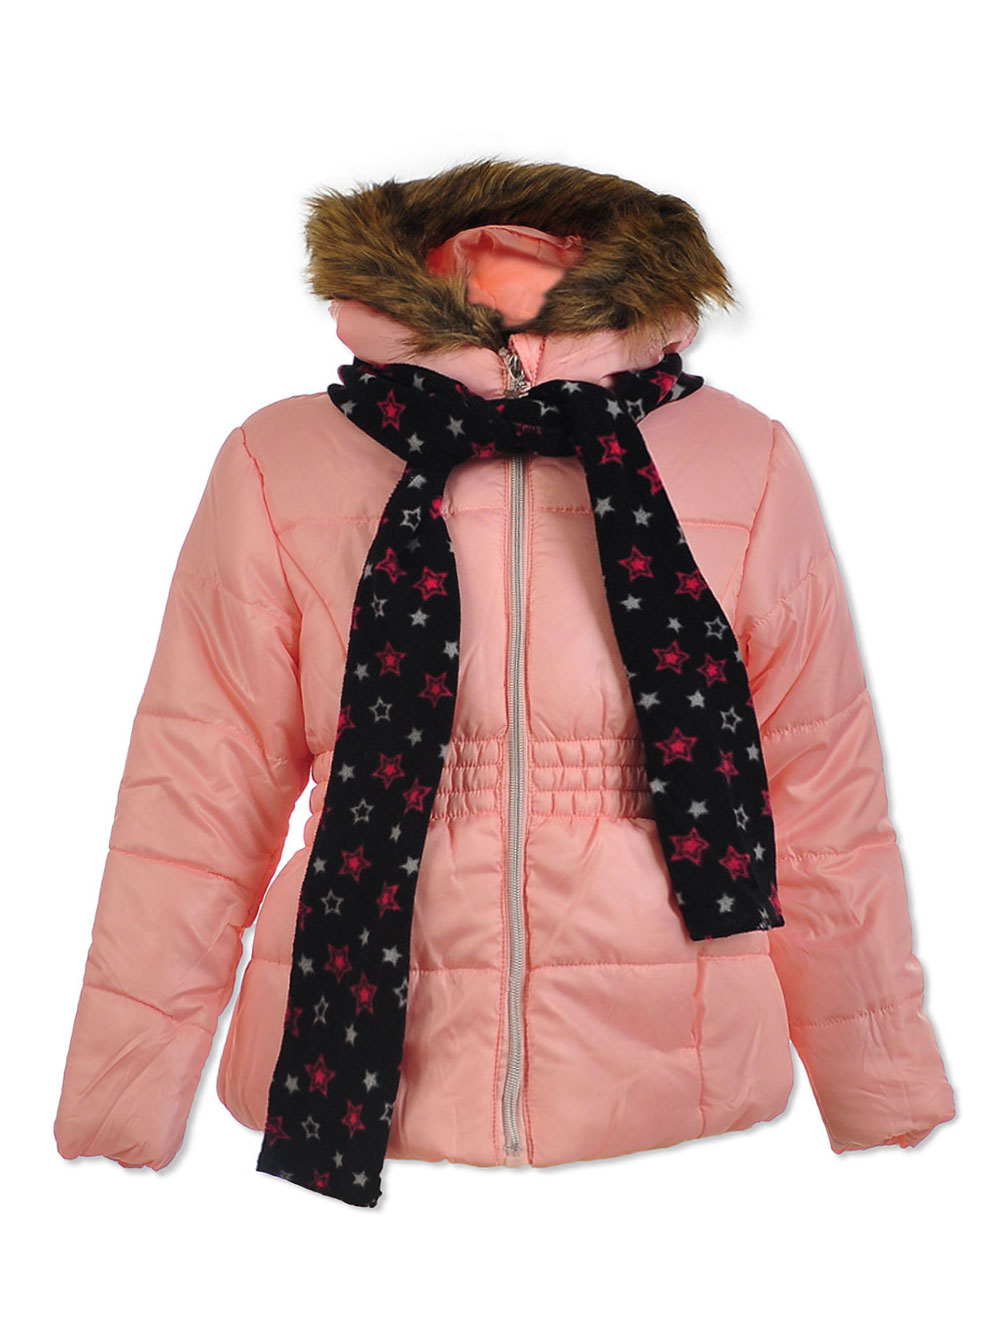 Girls Blush Jackets Coats